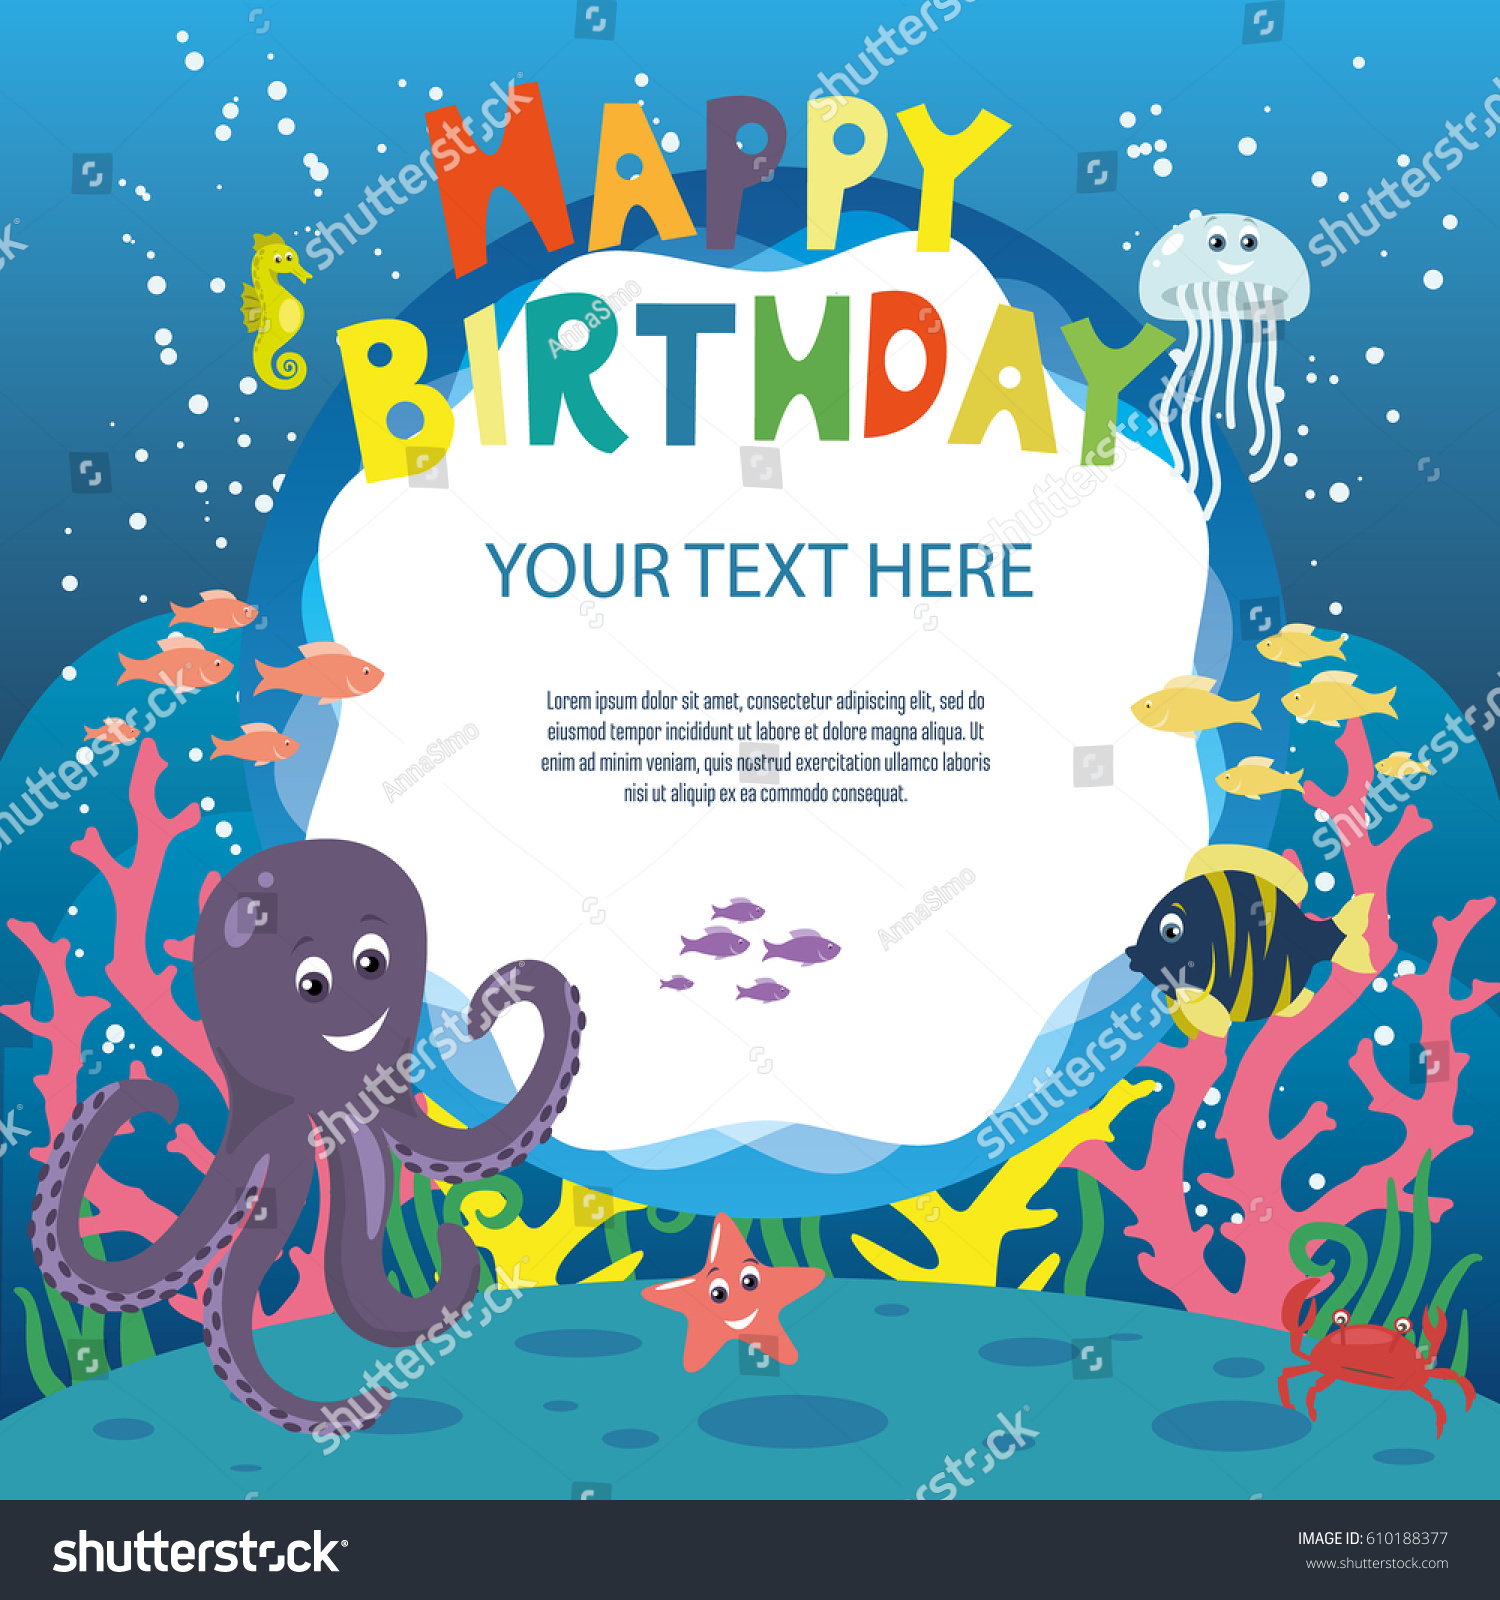 6 Birthday Card Templates: Happy Birthday Invitation Card Template Sea Stock Vector